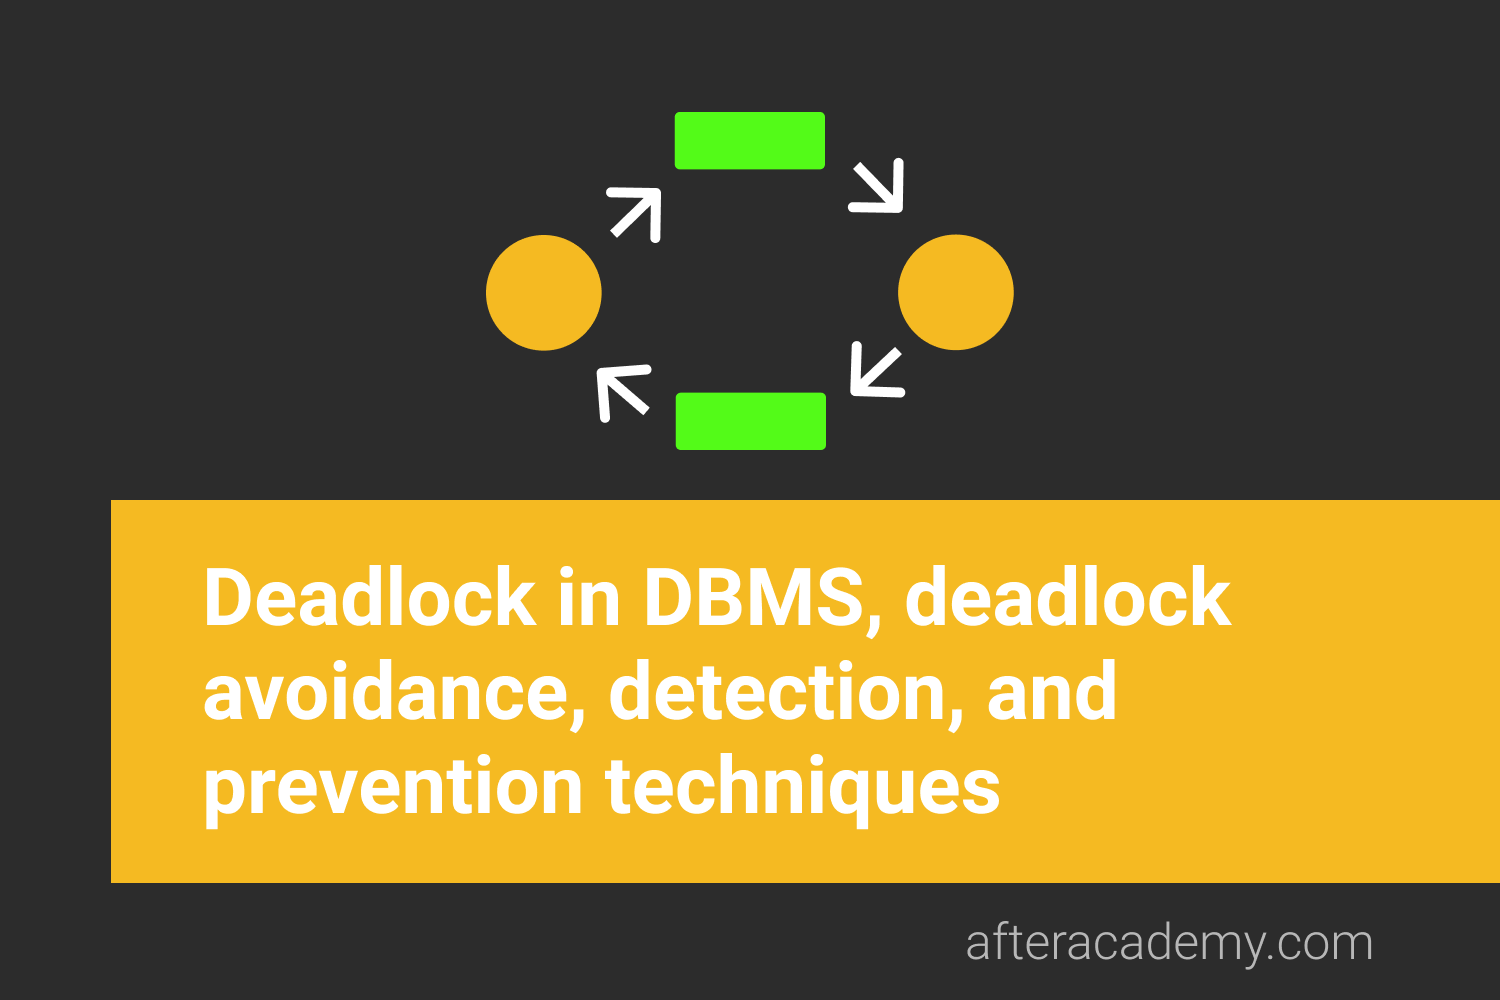 What is a Deadlock in DBMS and what are the deadlock avoidance, detection, and prevention techniques?